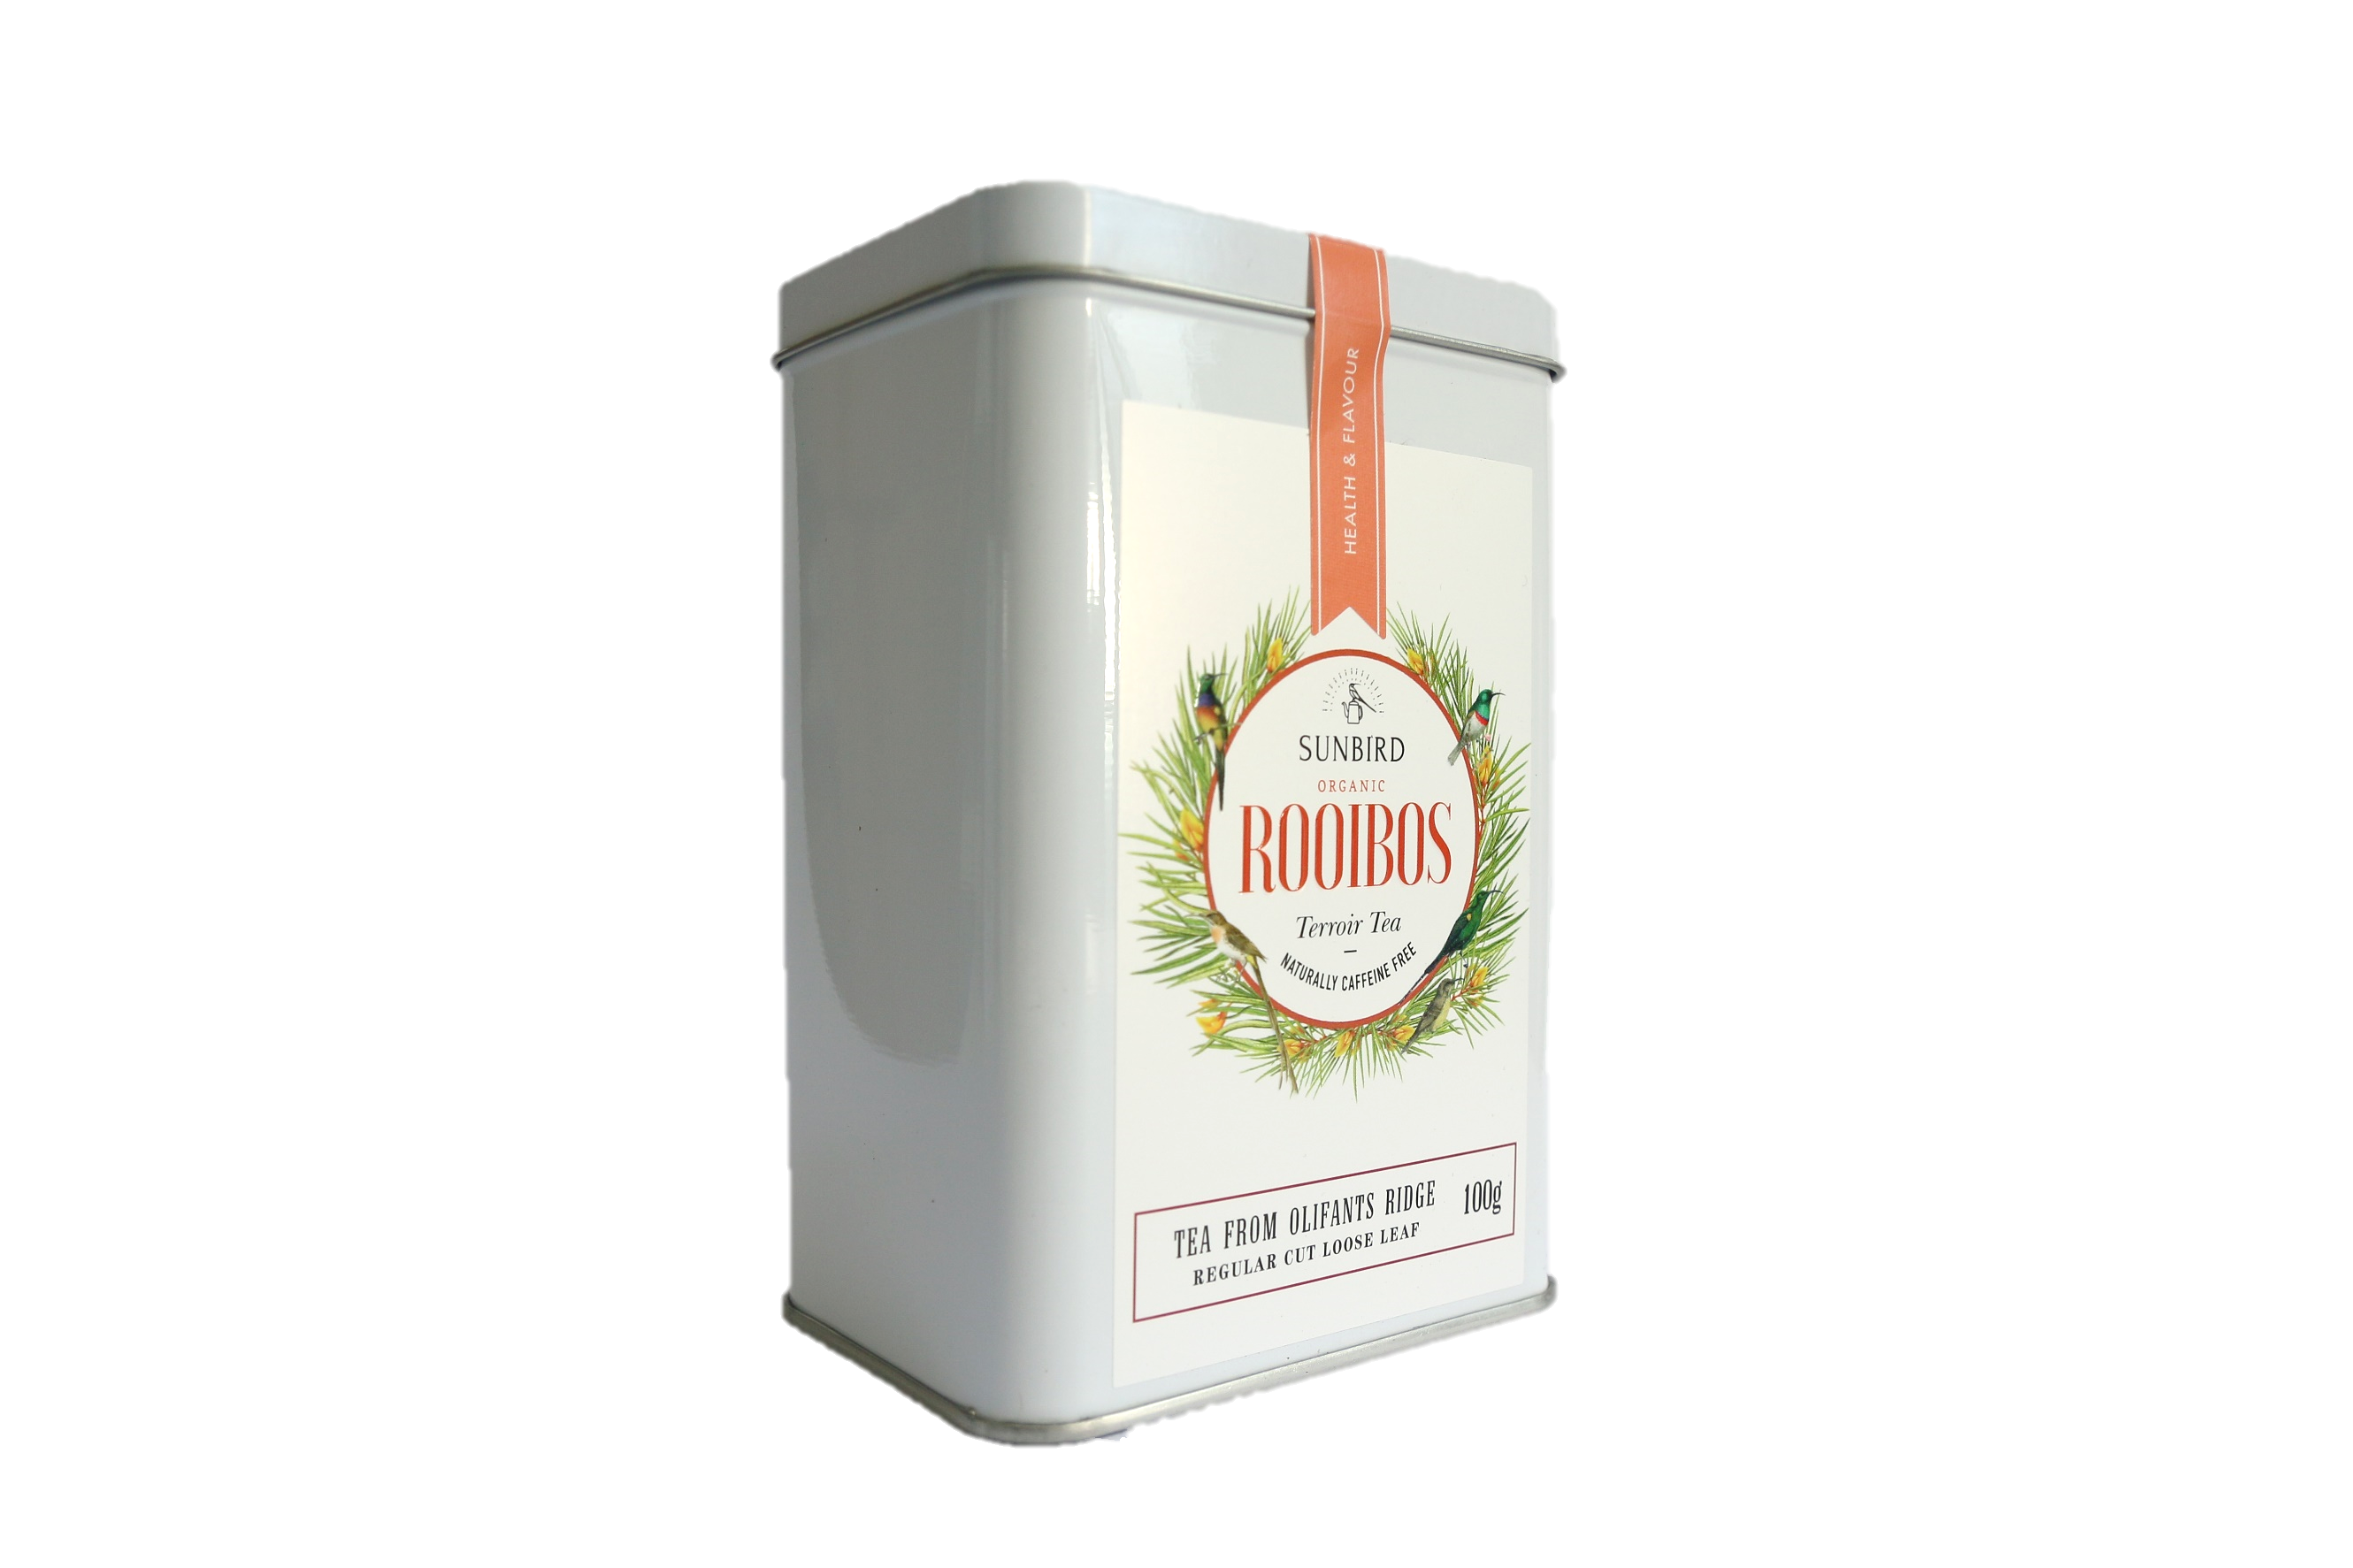 OLIFANTS RIDGE • Regular-Cut Loose Leaf Rooibos Tea • 100g